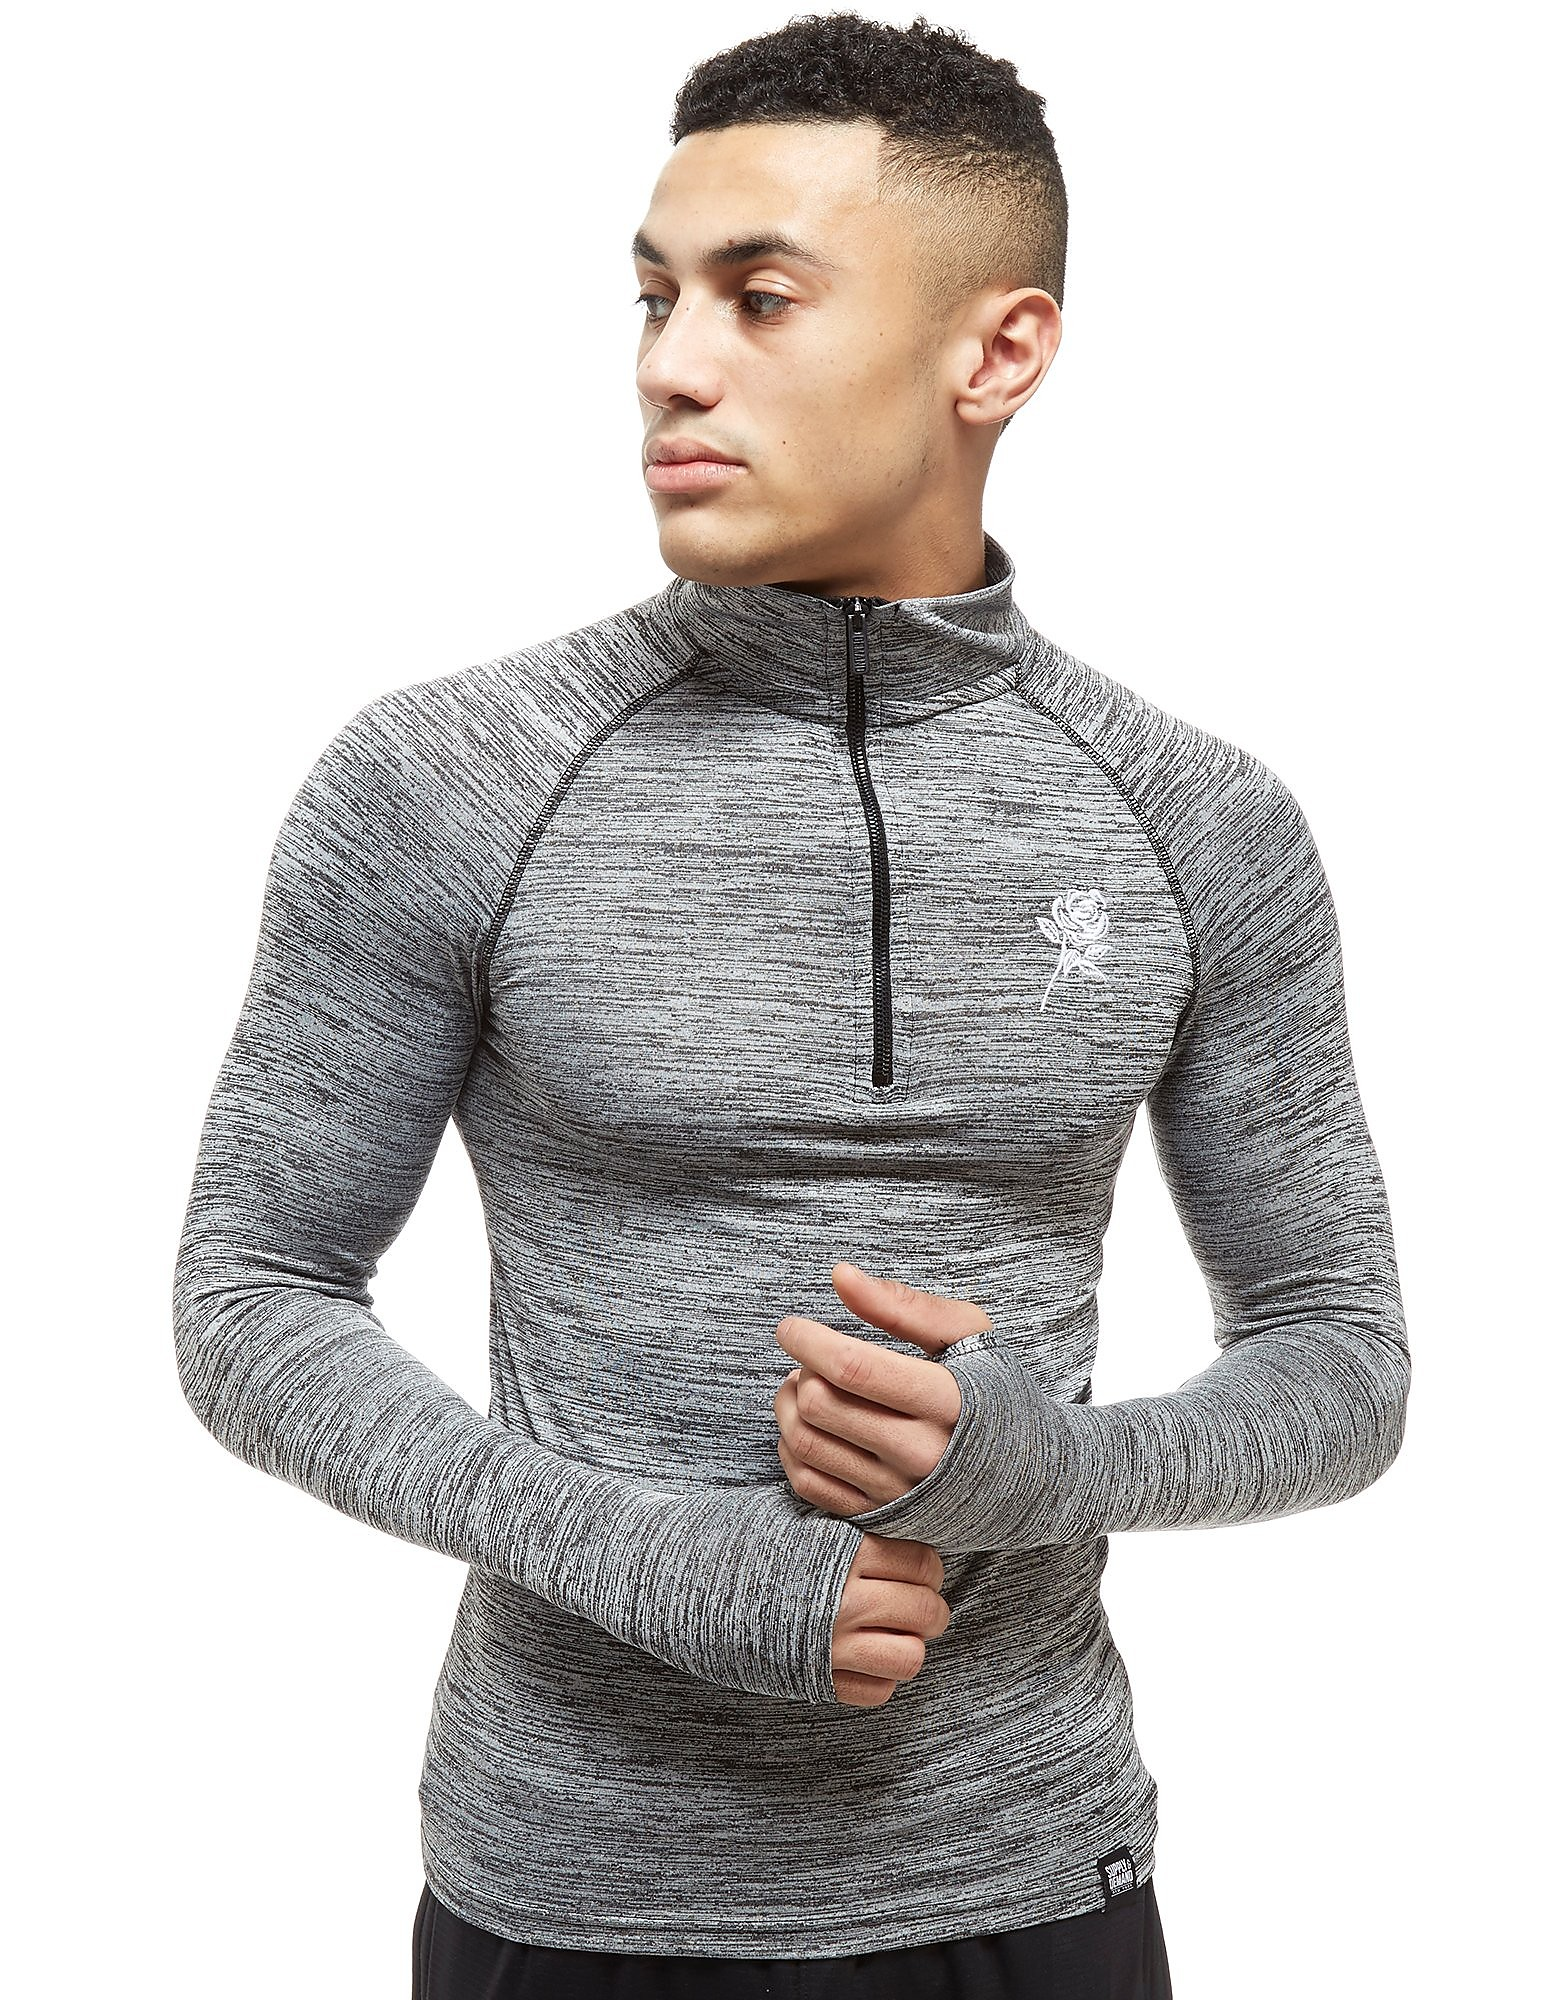 Supply & Demand Body Long Sleeve 1/4 Zip Top - Only at JD, Grey